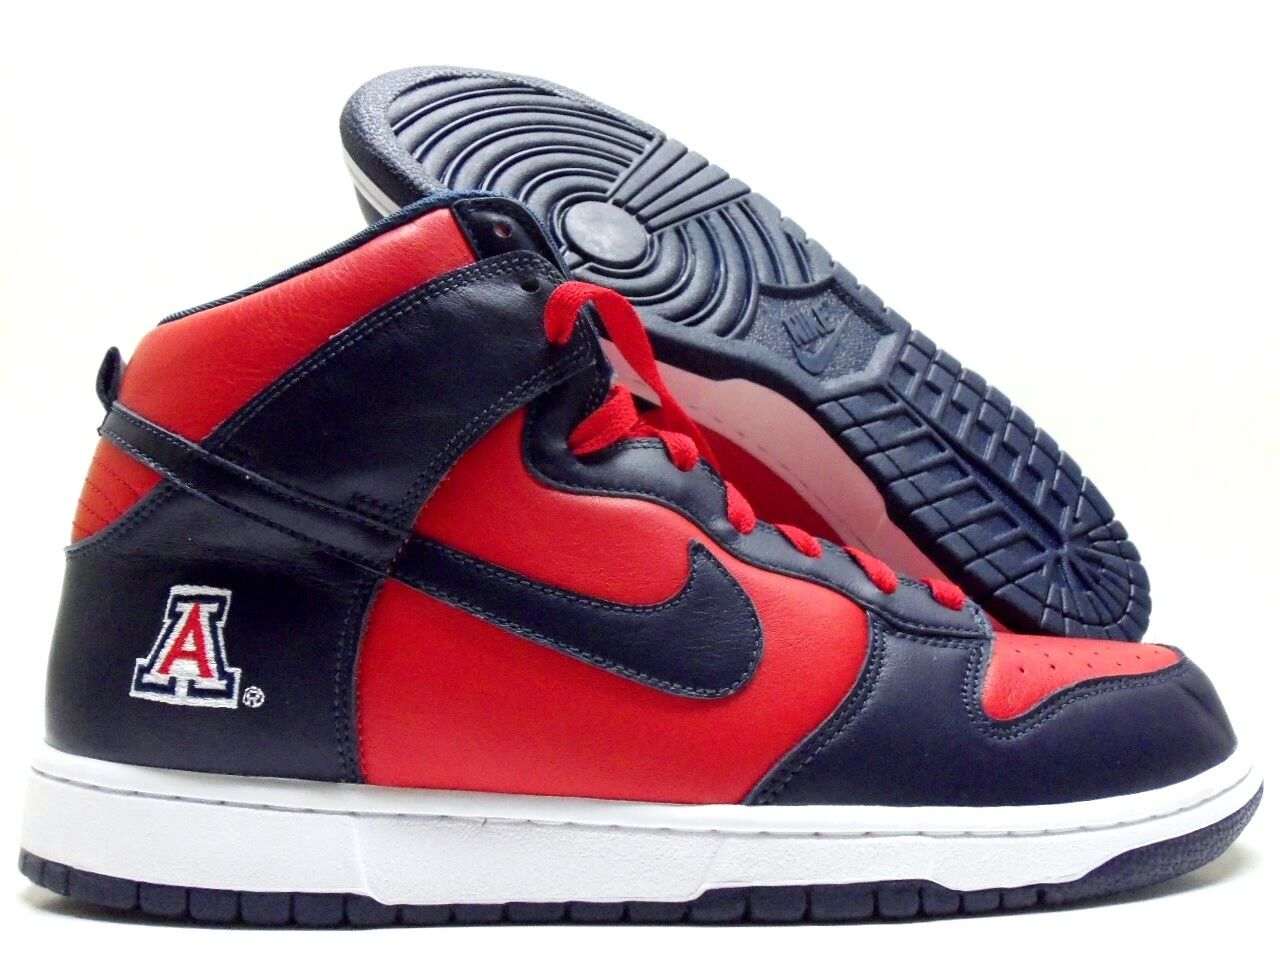 NIKE DUNK HIGH ID SPORT RED/MIDNIGHT NAVY-WHITE SIZE MEN'S 12 Price reduction Cheap women's shoes women's shoes